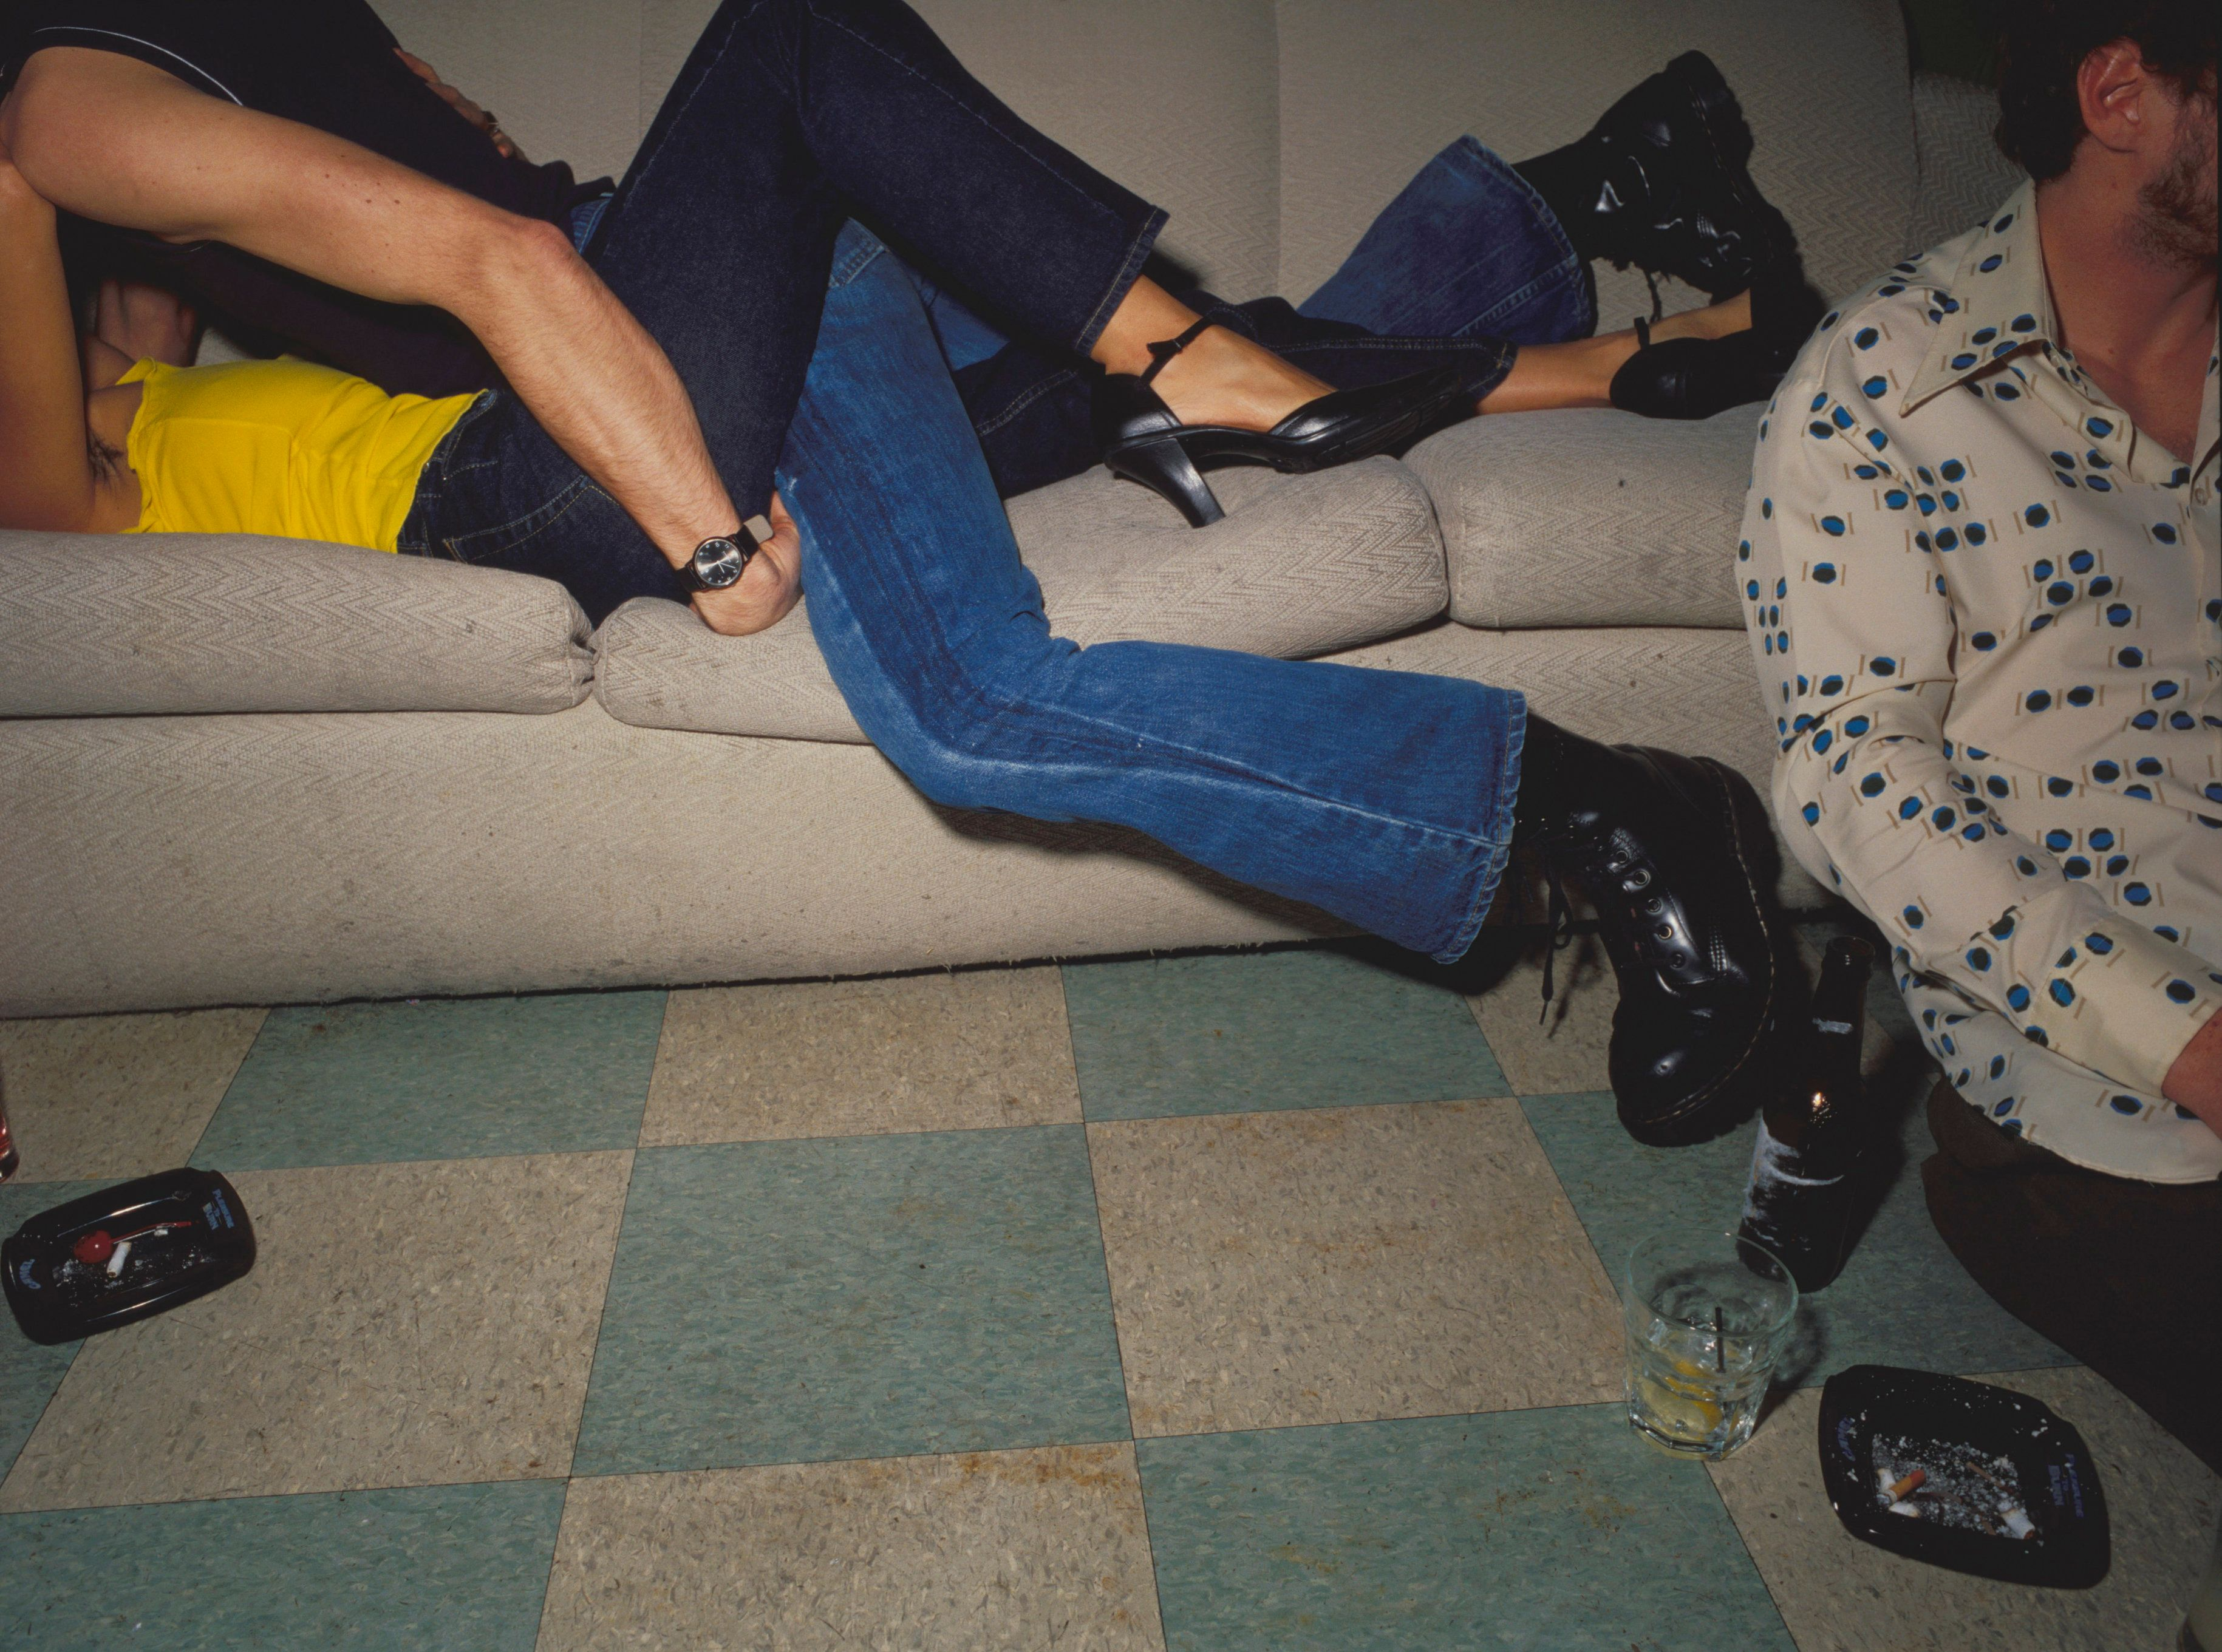 Couple embracing on couch at party